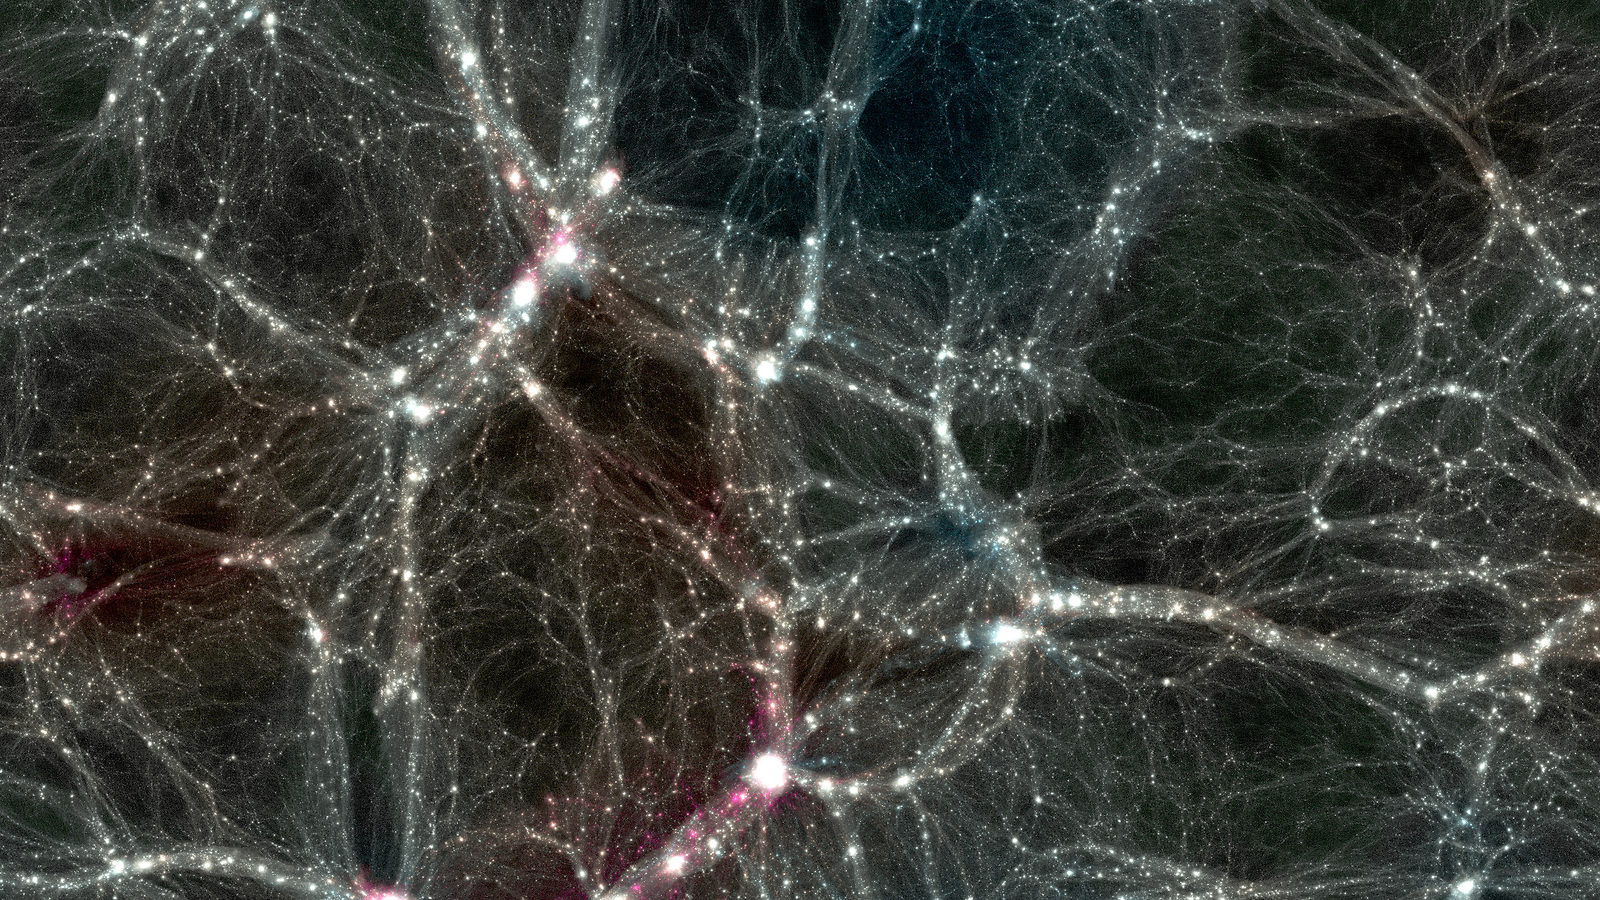 Image: Trillion particles